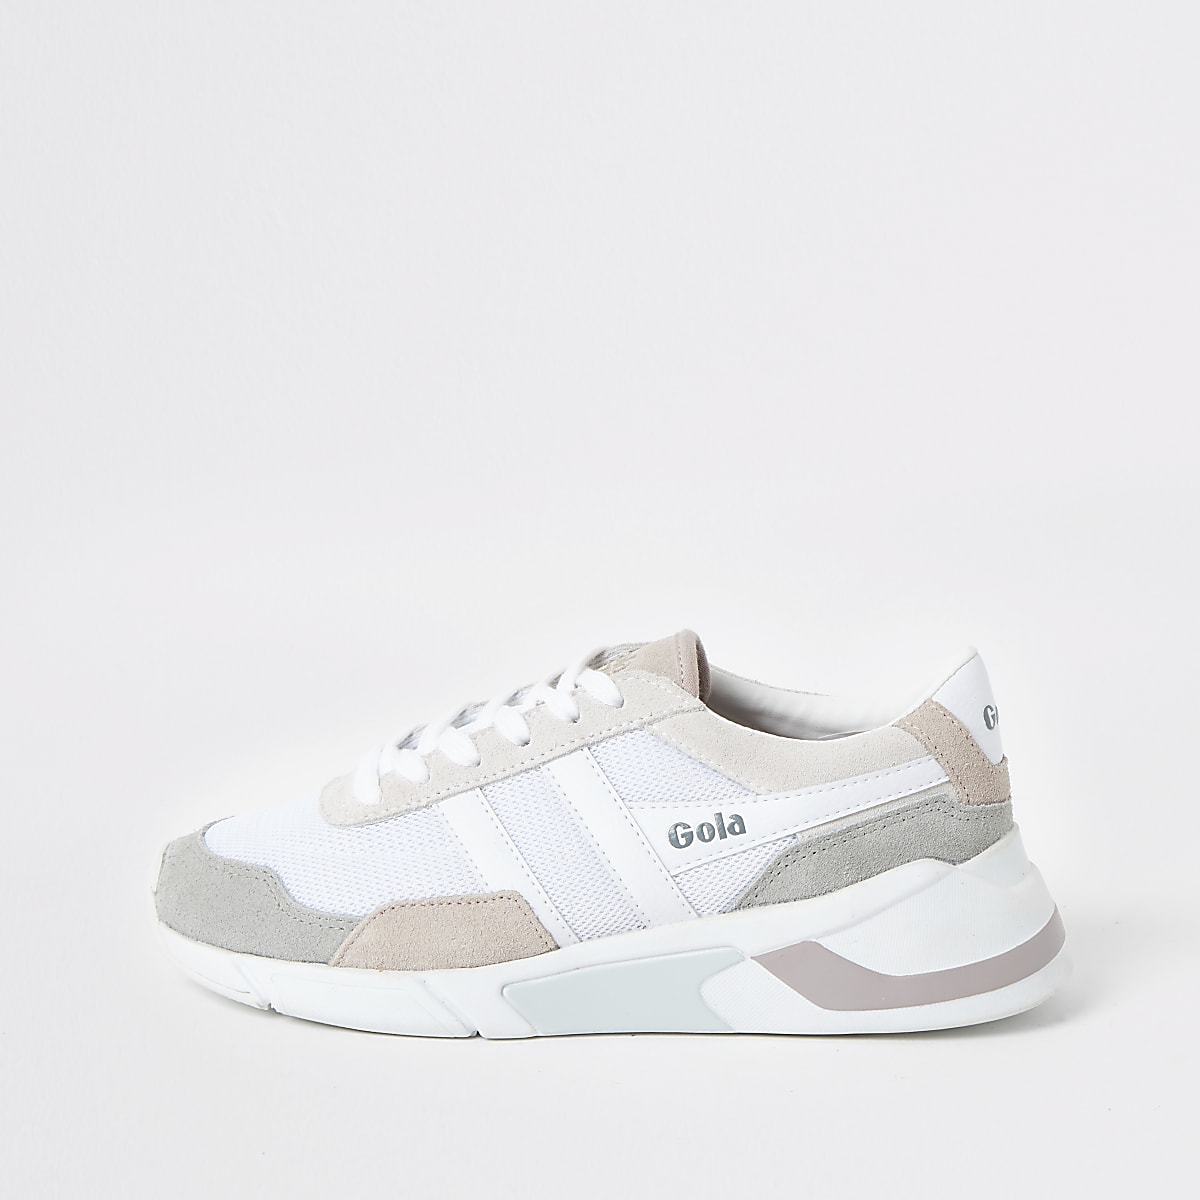 33415422c10c1 Gola white print Eclipse runner trainers - Trainers - Shoes & Boots - women